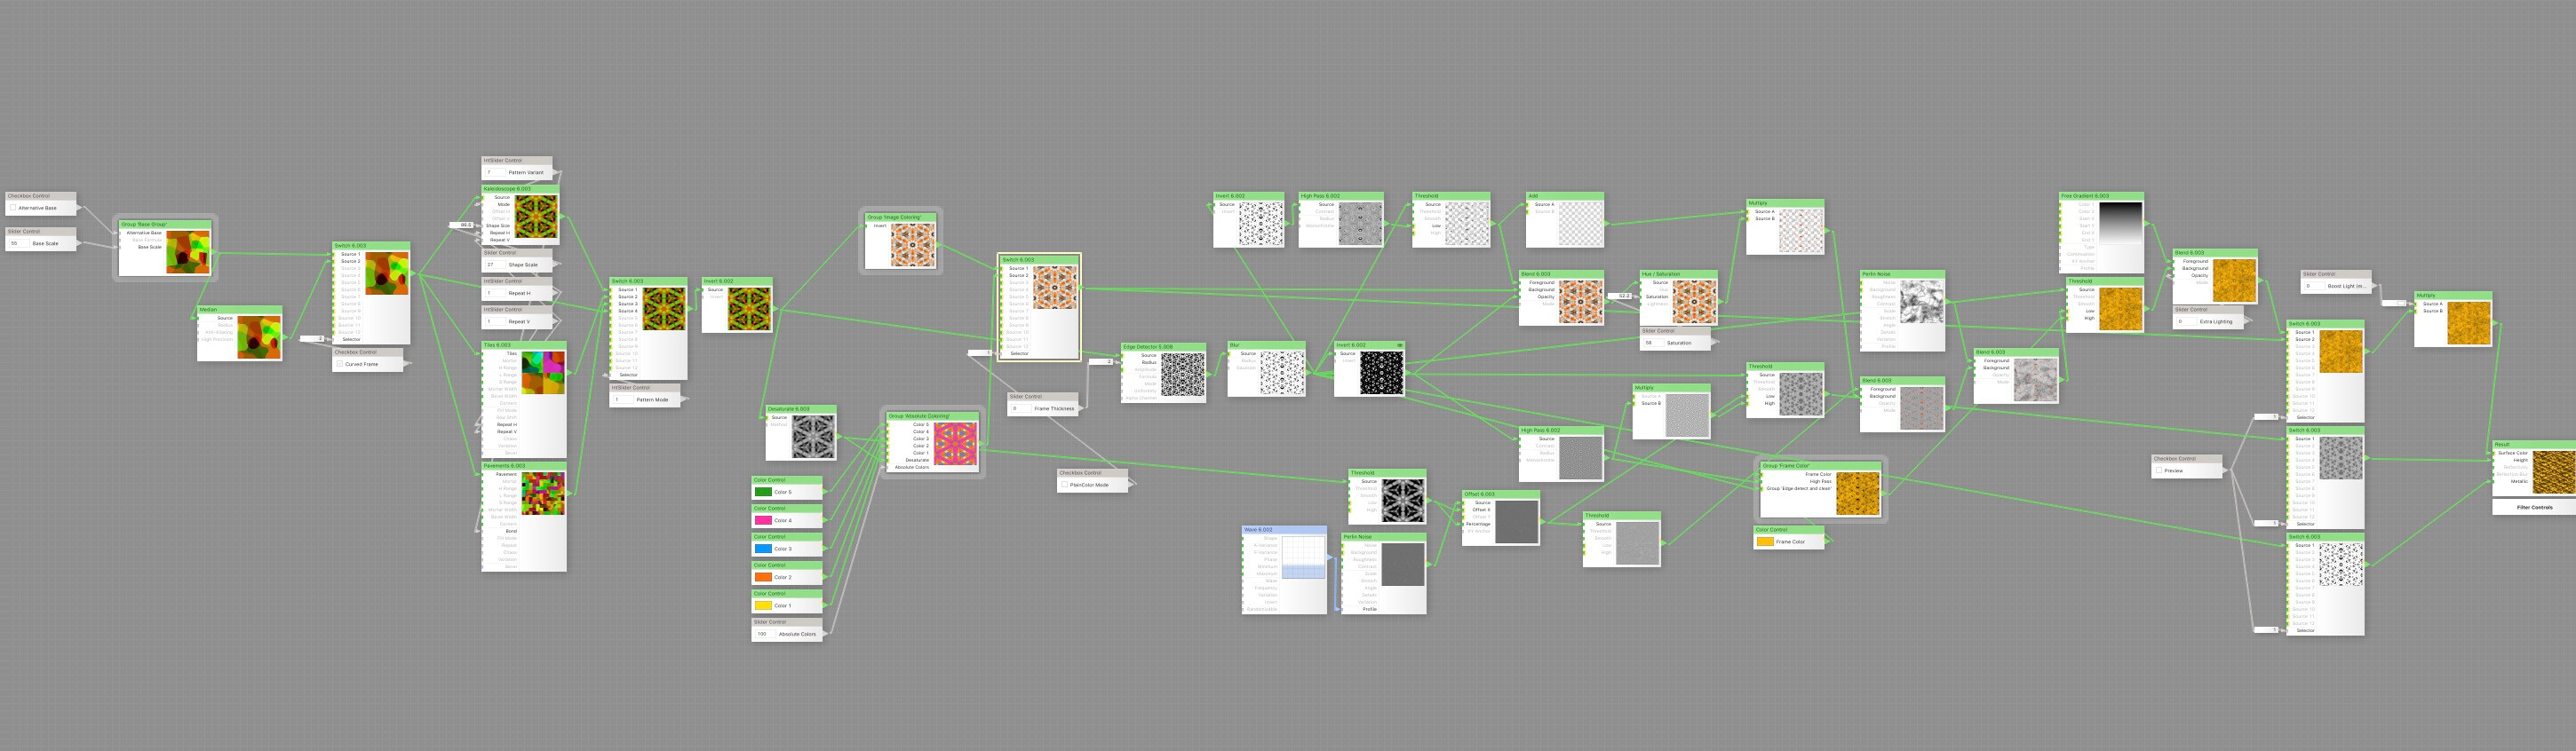 Here's a really hard to see image of that node structure in FilterForge.